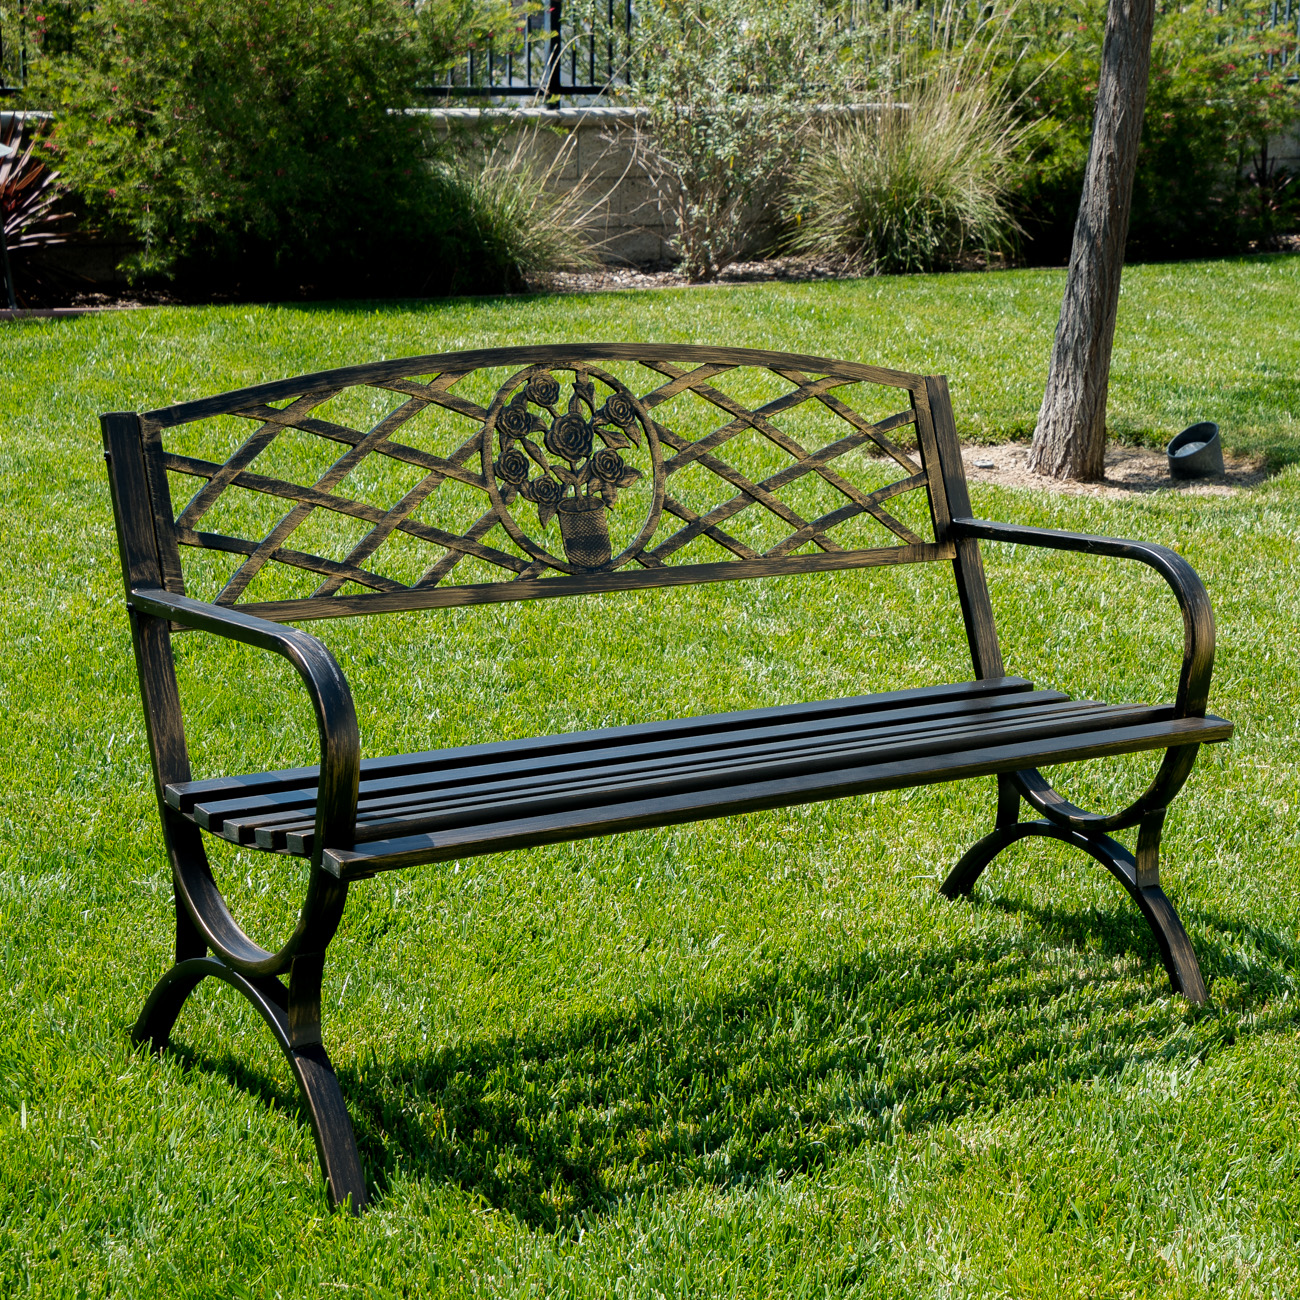 Garden Chair Outdoor Bench Patio Chair Metal Garden Furniture Deck